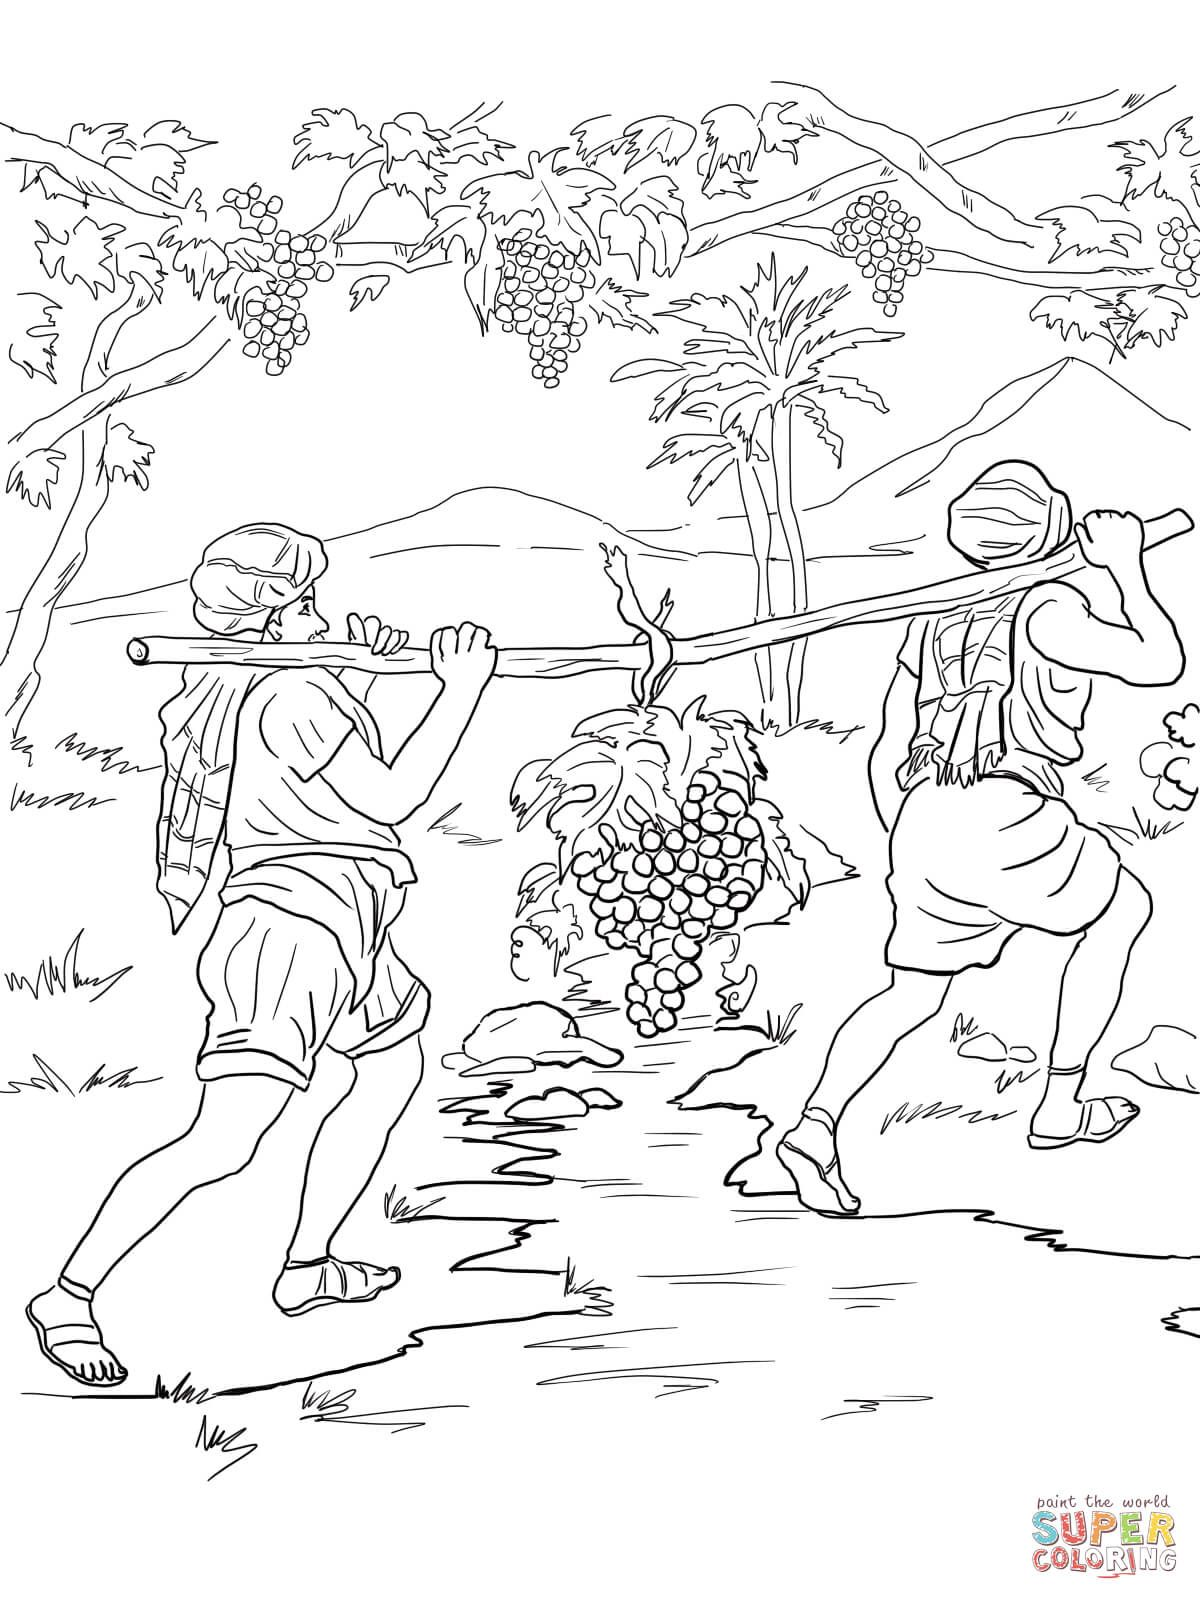 Twelve Spies Rebellion And Wandering Super Coloring Pages